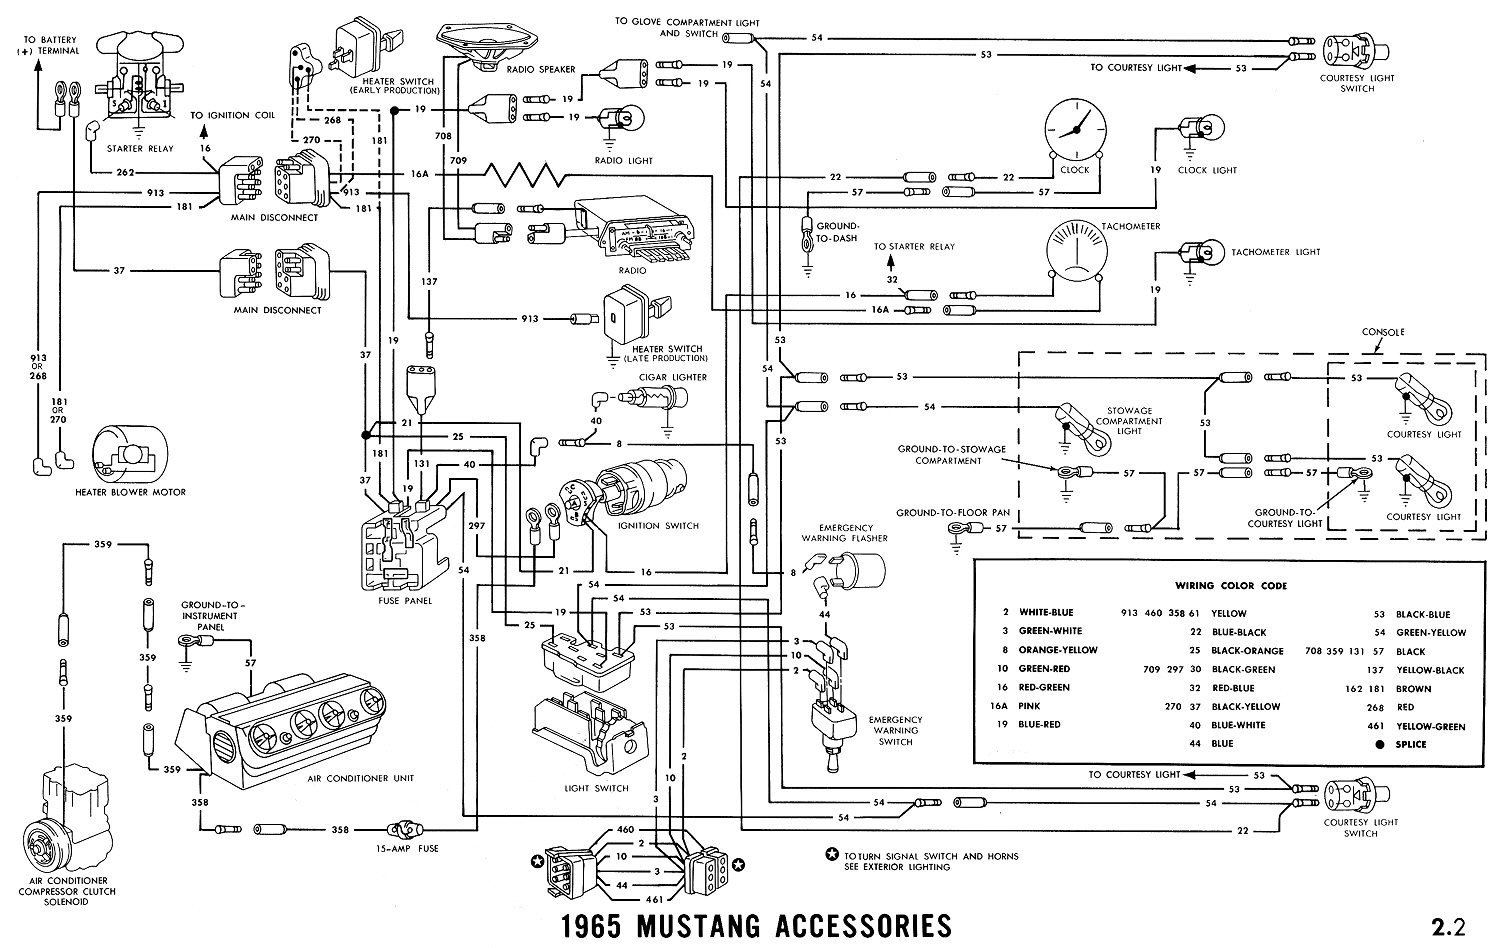 1965 mustang wiring diagrams average joe restoration rh averagejoerestoration com 1965 mustang wiring diagram pdf 1965 mustang ignition wiring diagram